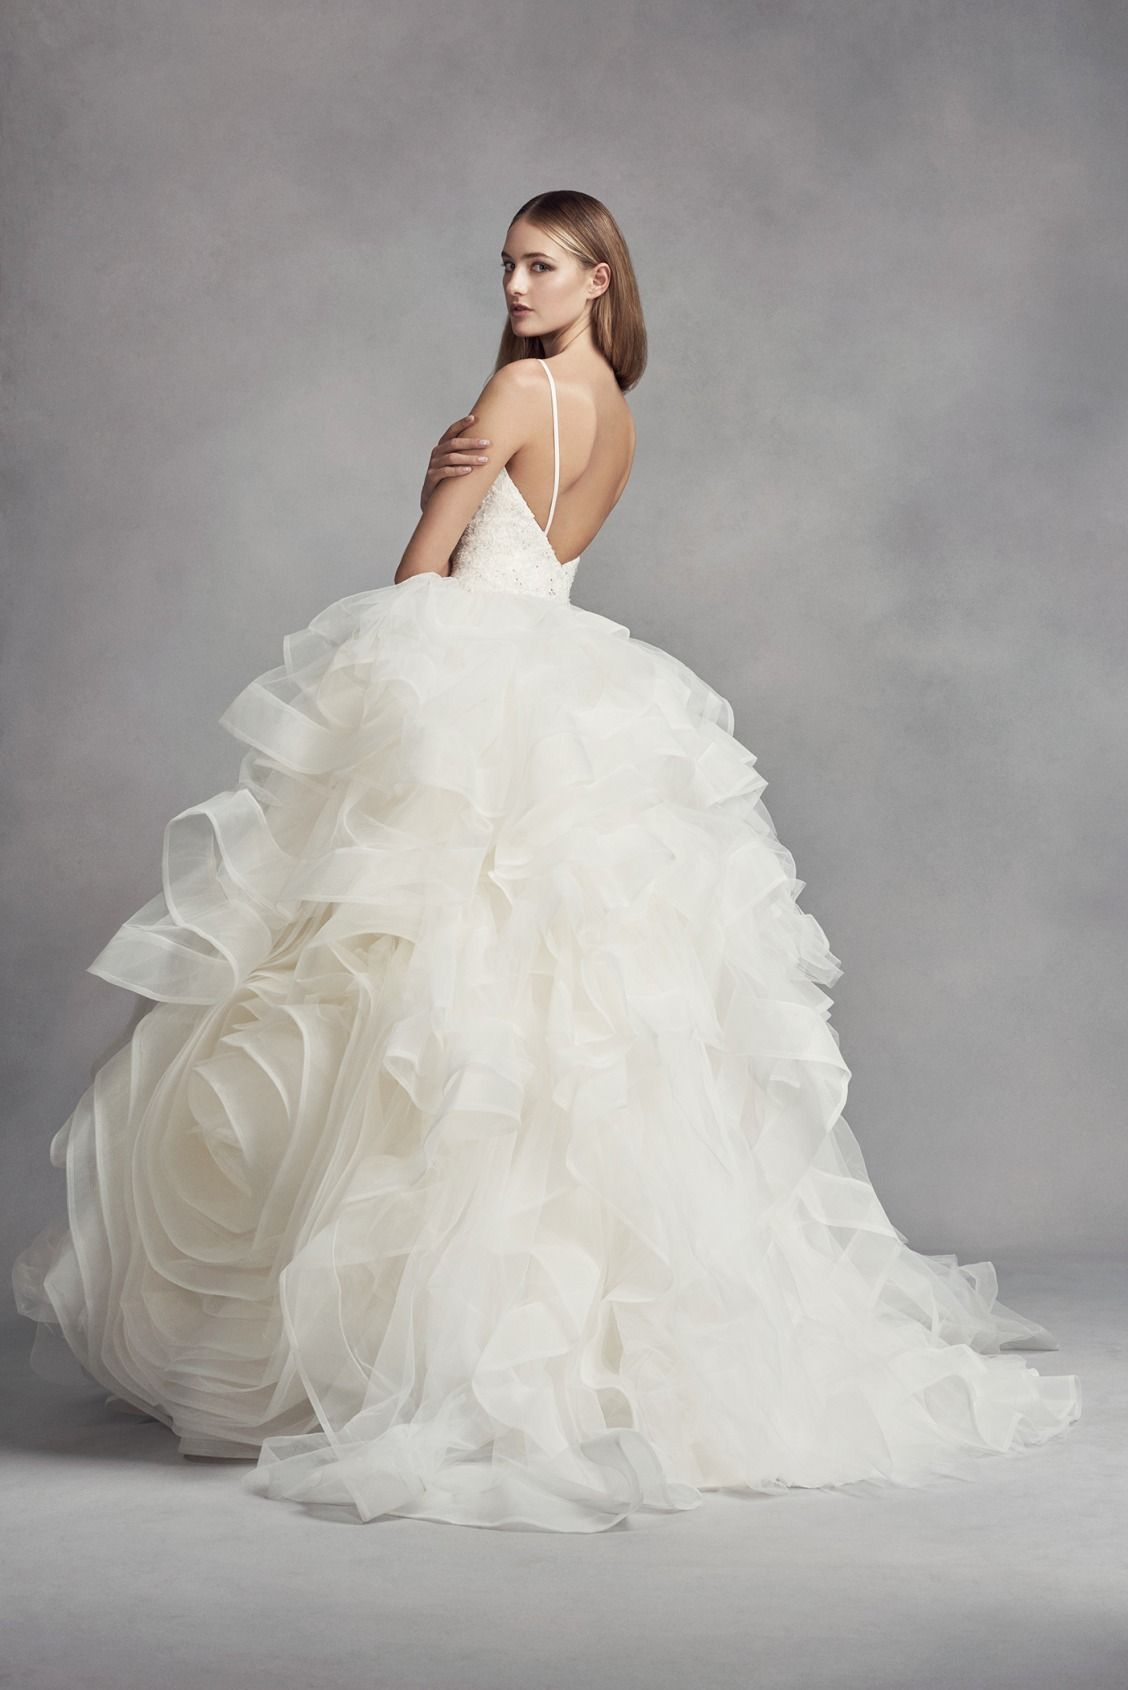 Spaghetti Strap V-Neck Organza Rosette Ball Gown Wedding Dress by WHITE by  Vera Wang available at David s Bridal 8e7c6ea7a74e